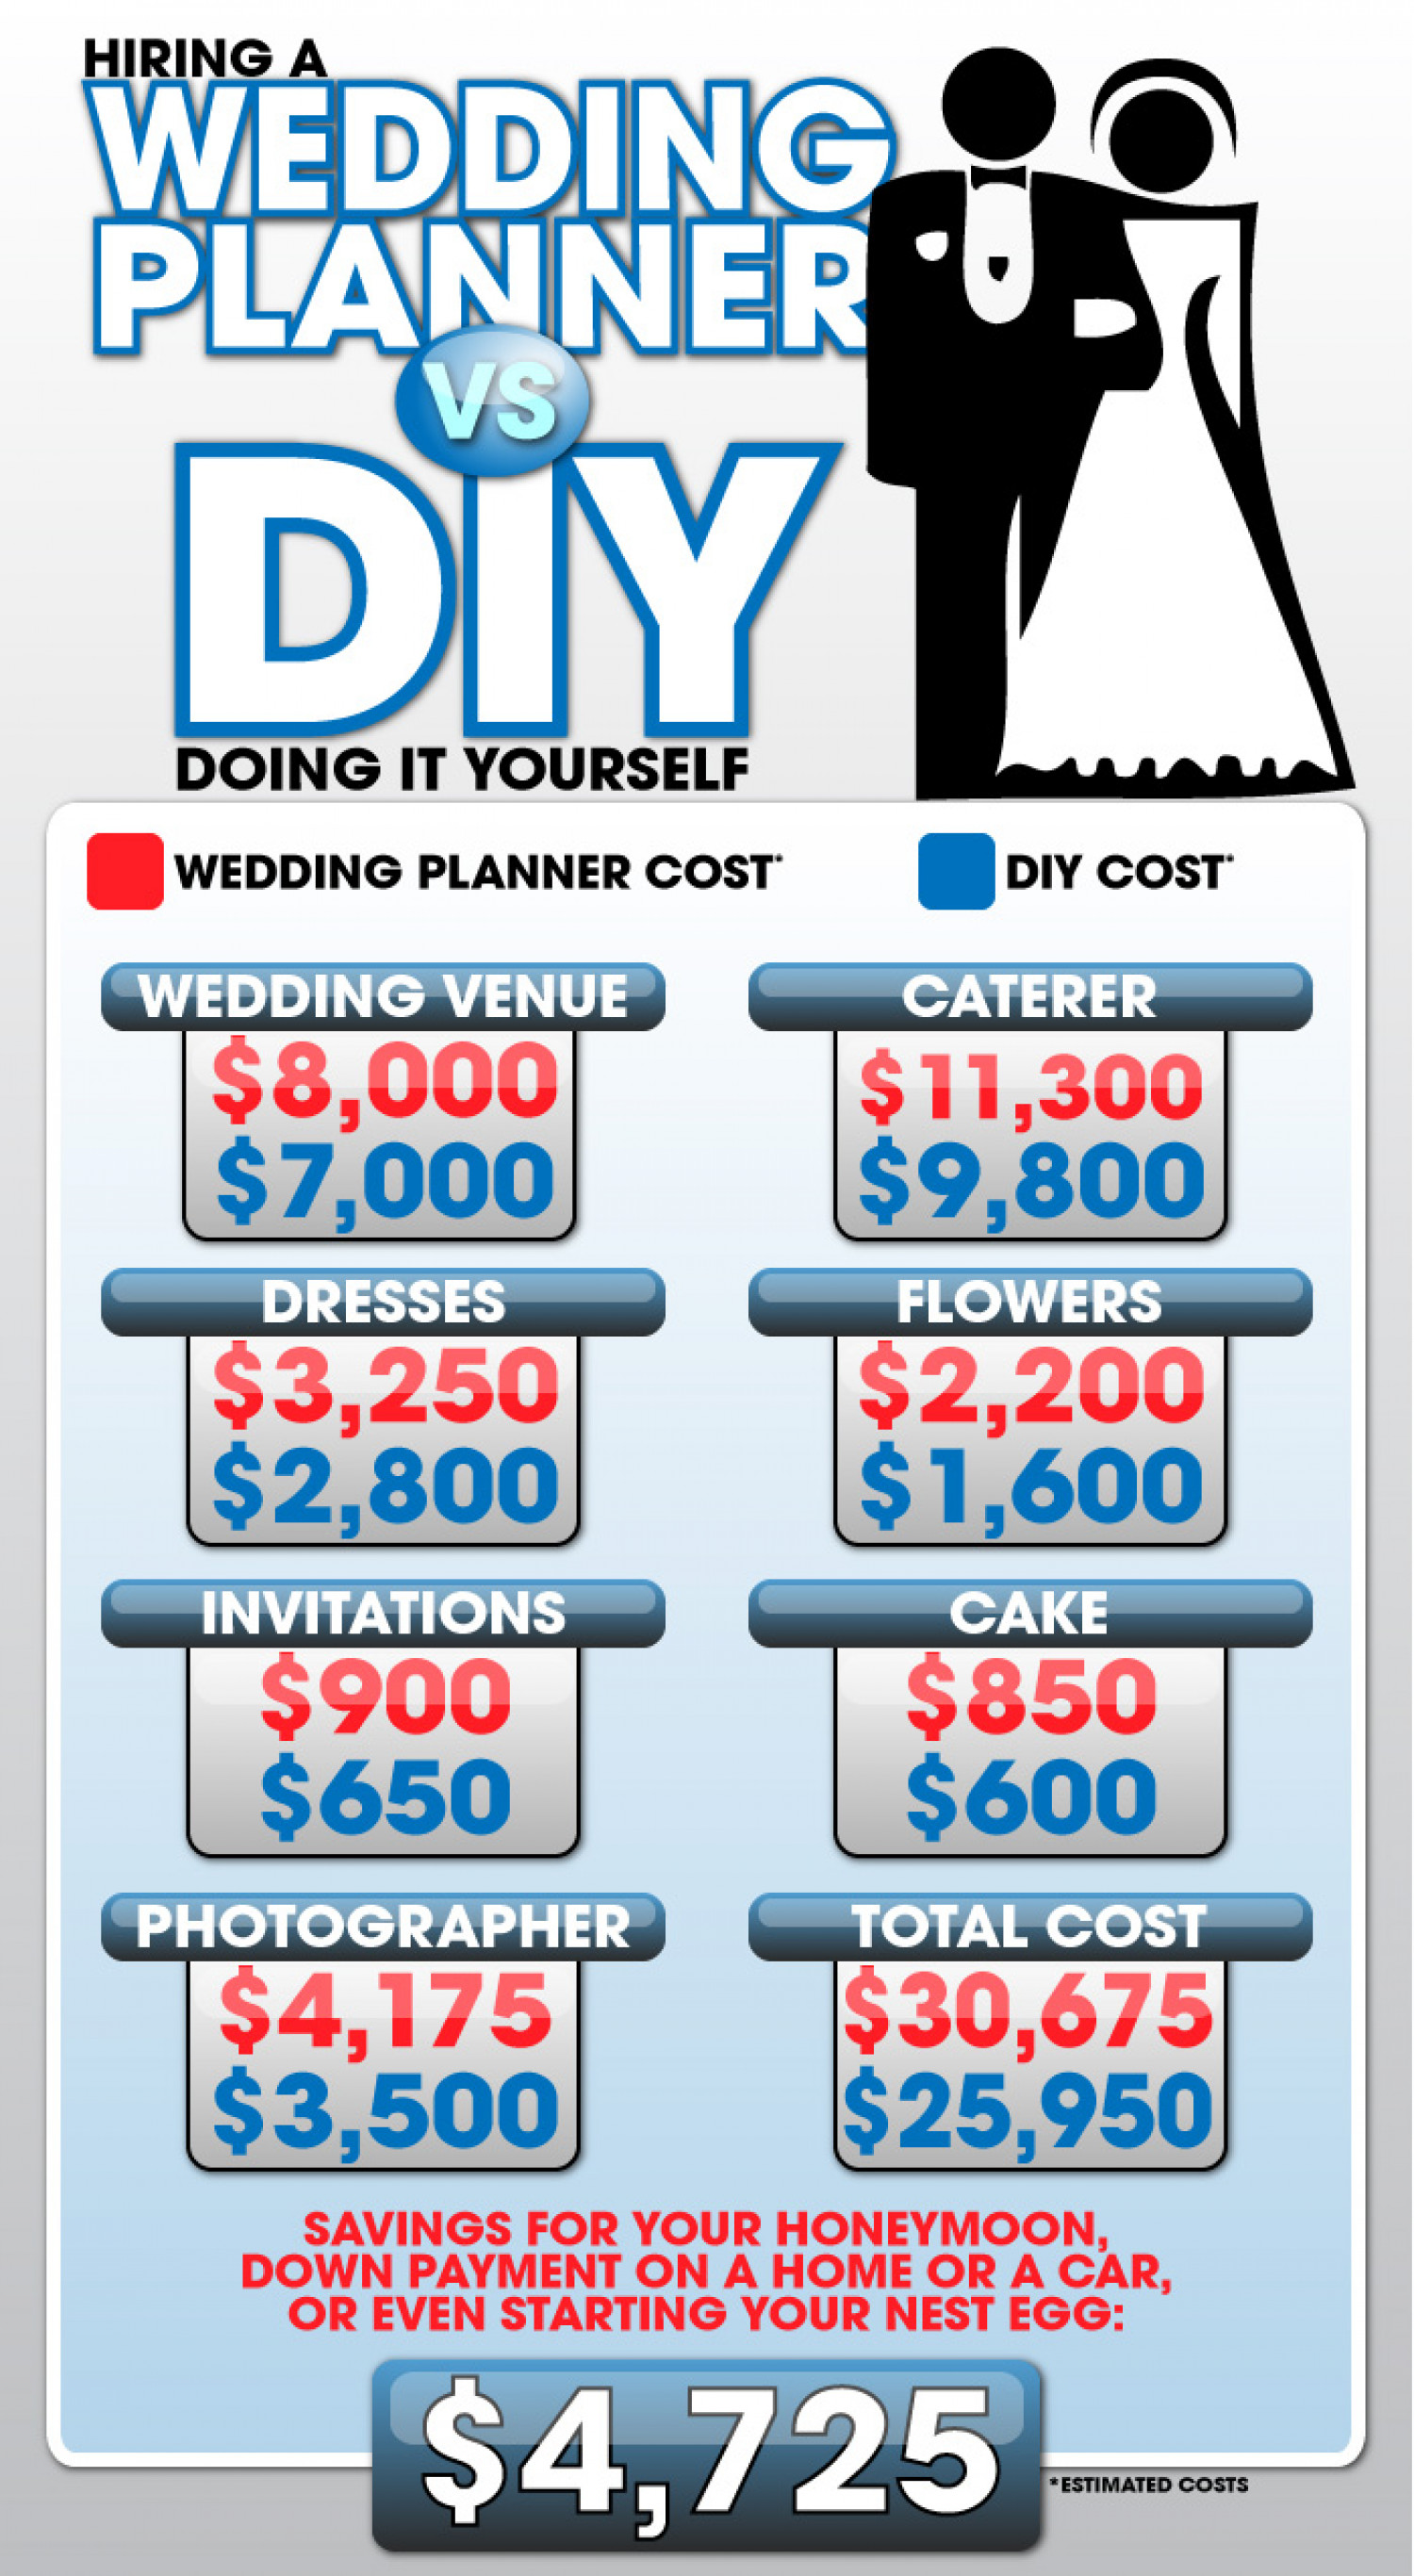 Hiring a Wedding Day Planner vs. DIY Infographic